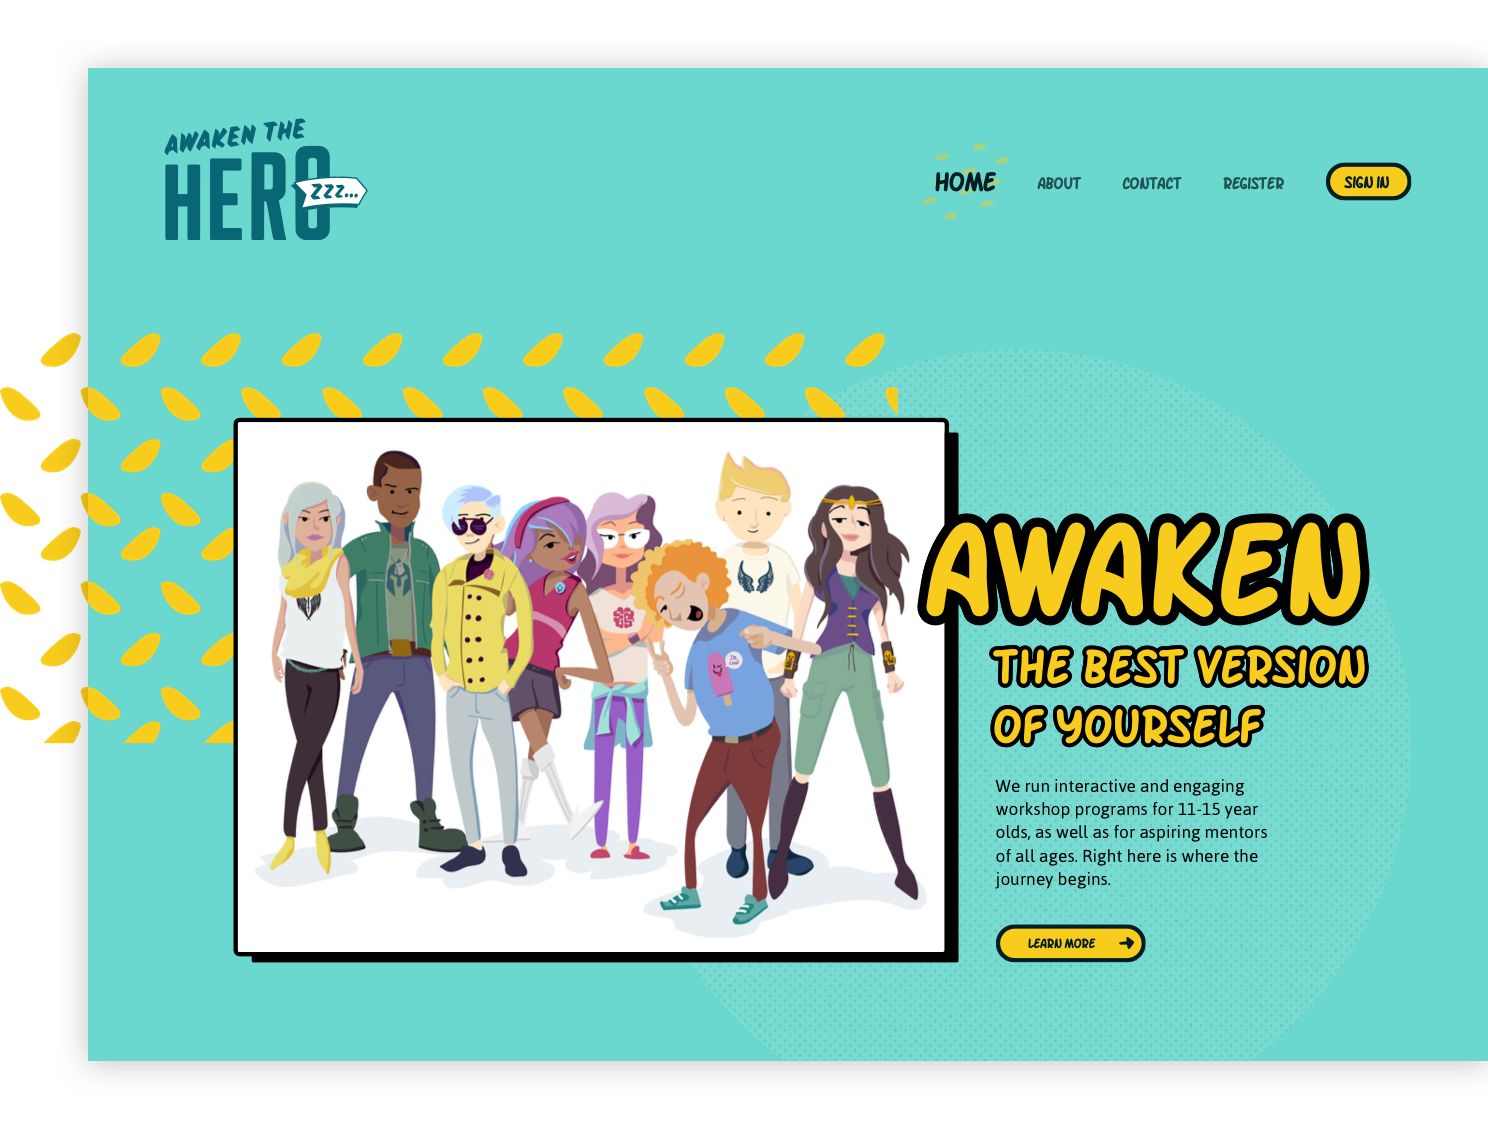 Awaken the Hero - Awaken the Hero aims to provide young Australian's with an opportunity to develop a positive personal identity and empower them to live their best life. Through a fun, creative and collaborative process, we recently launched phase one of the digital platform.